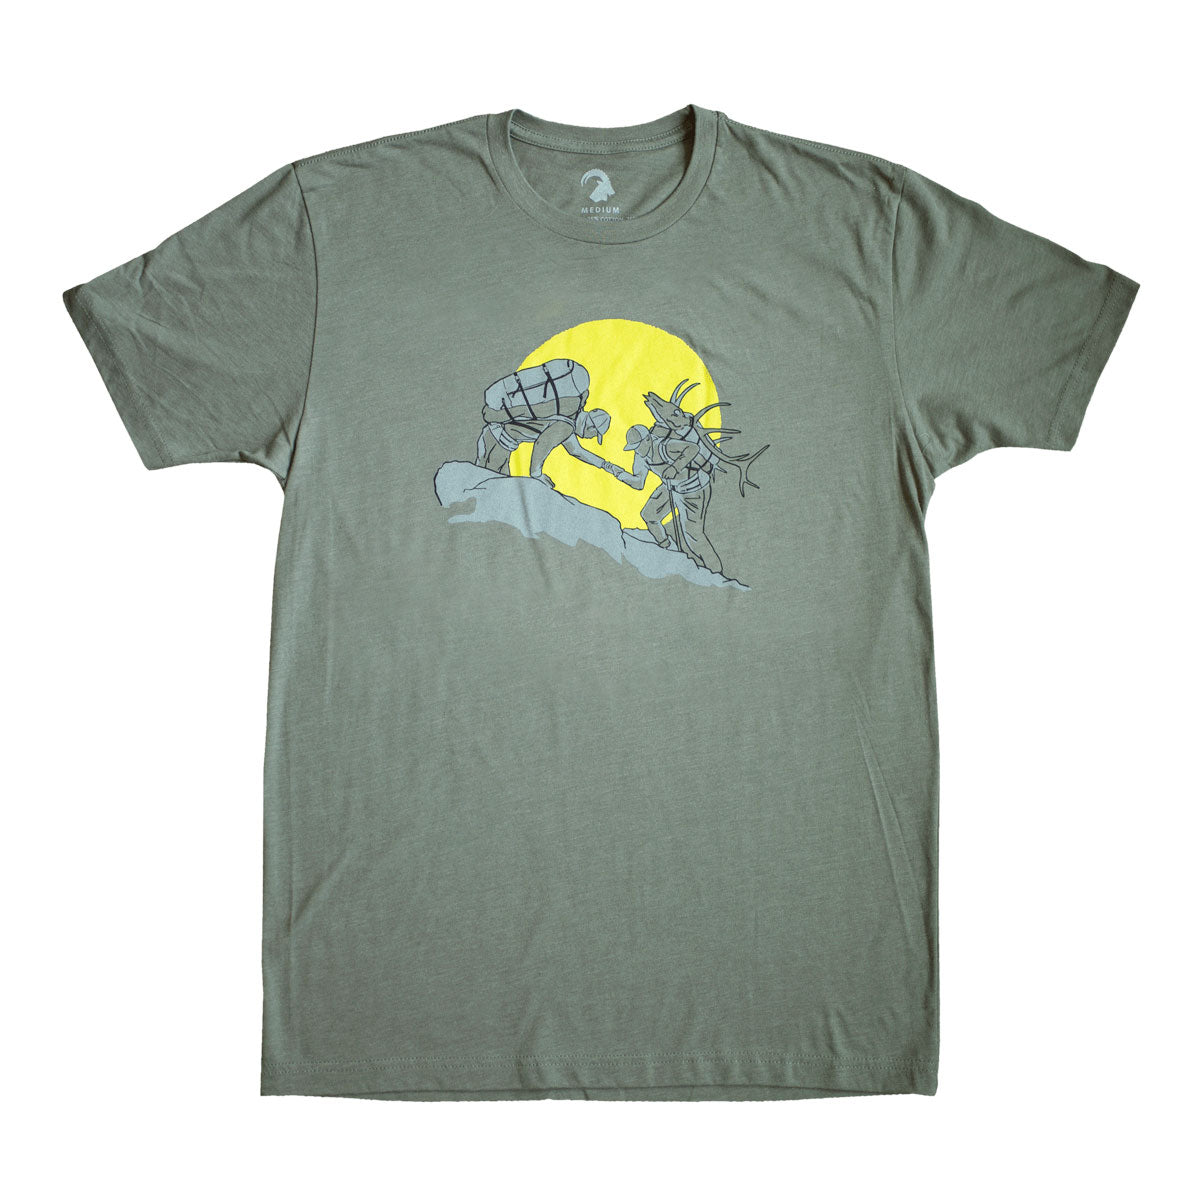 MTNTOUGH Team Shirt